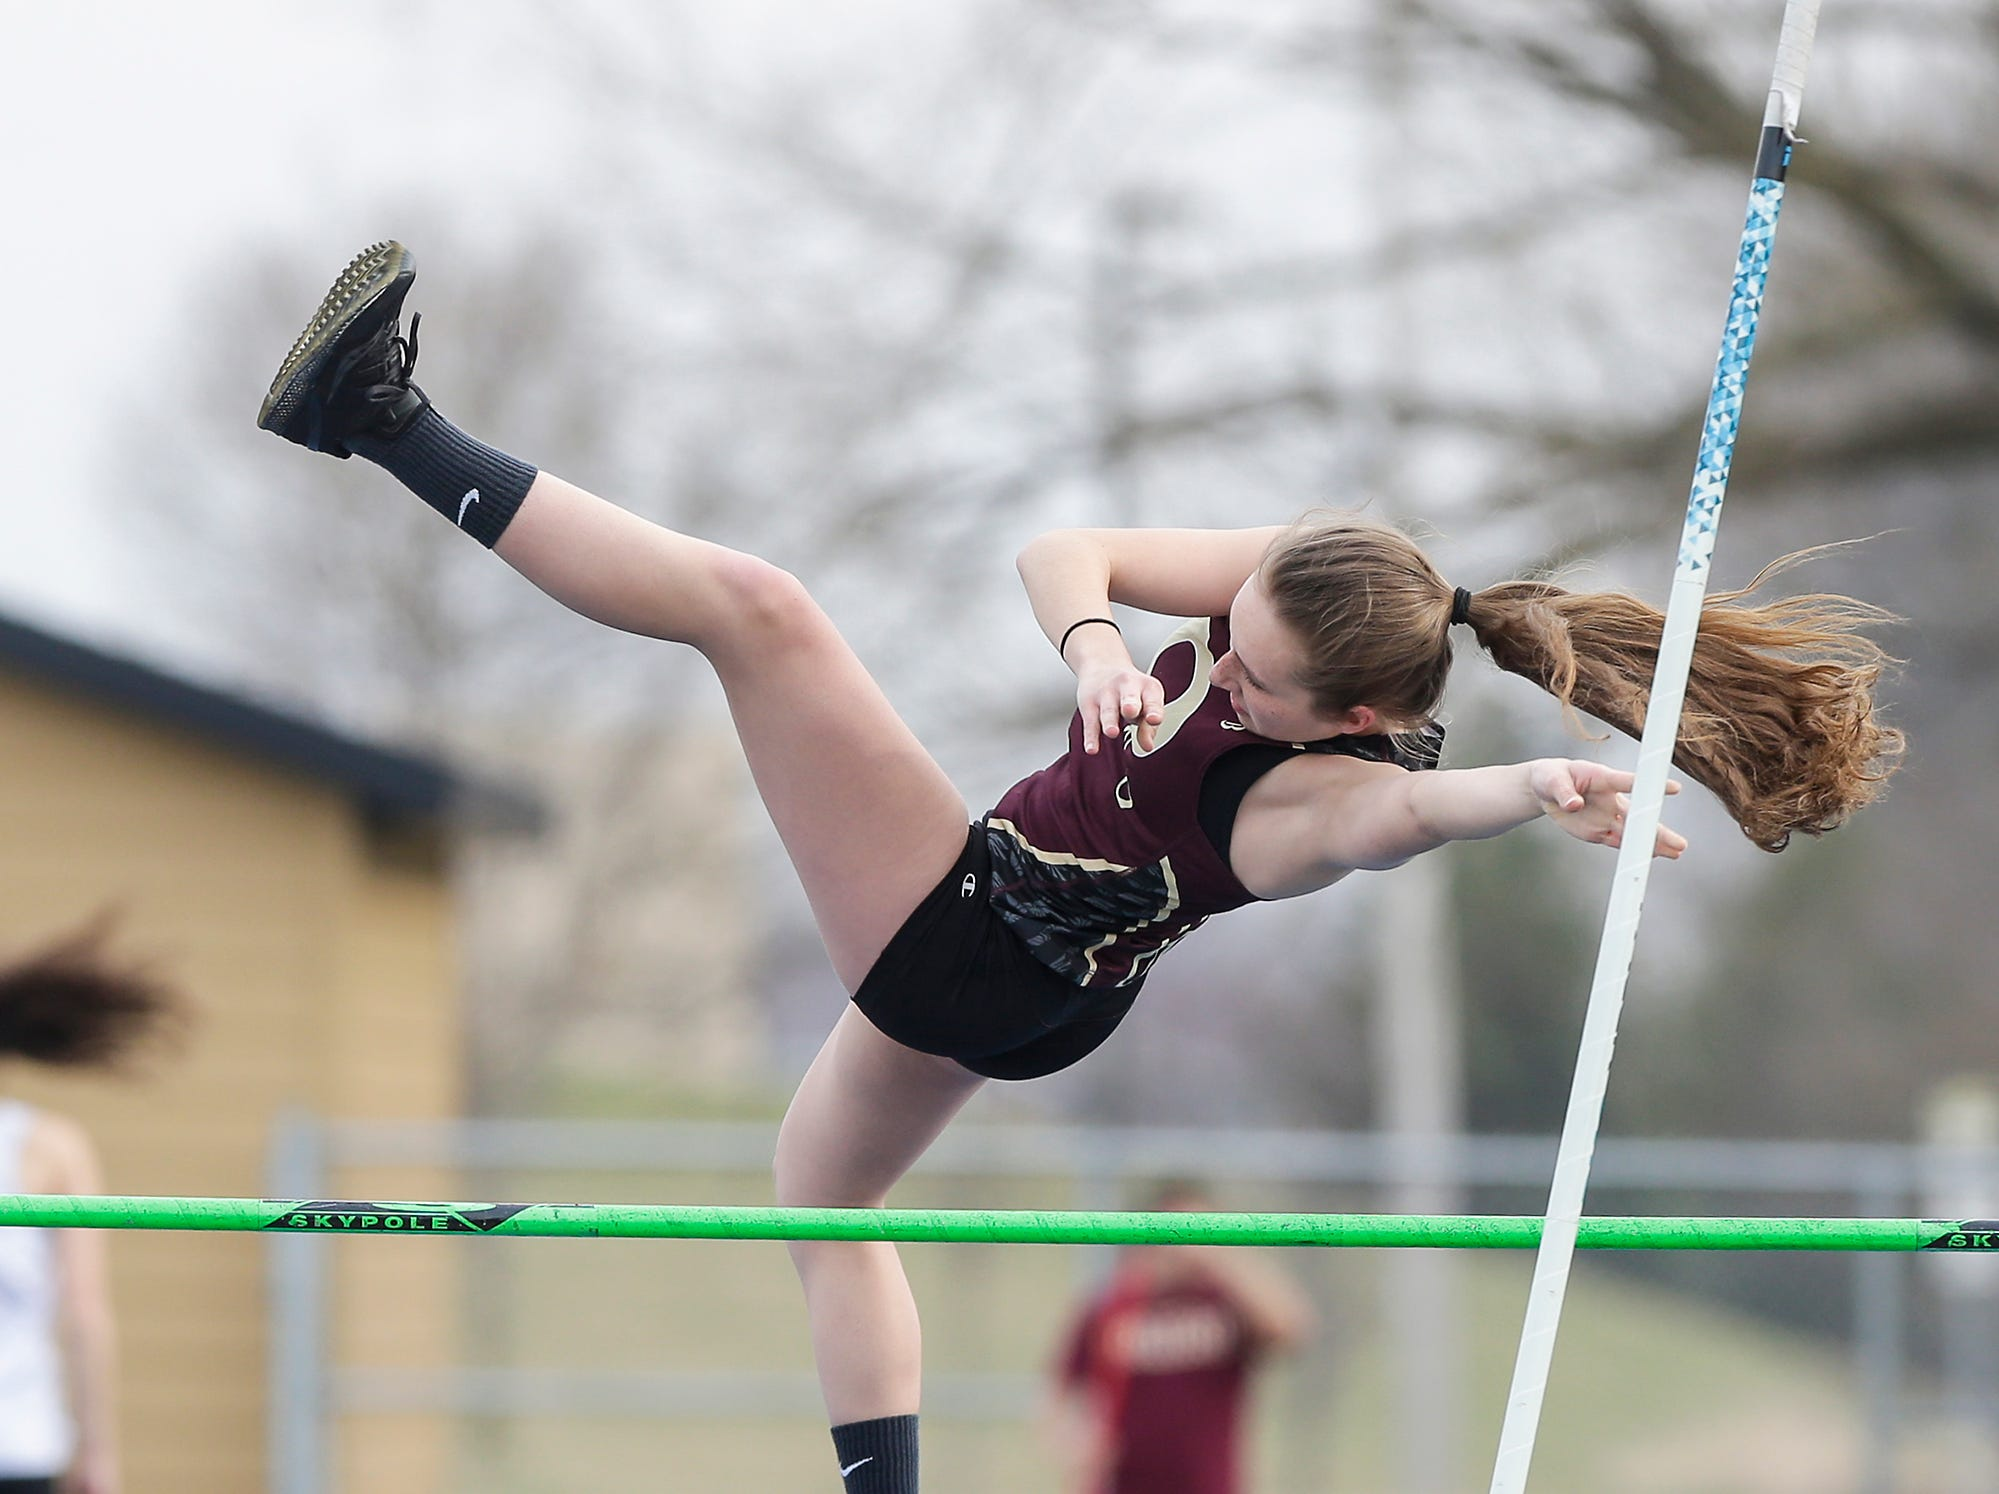 Omro High School's Tejah Thull takes part in the pole vault Tuesday, April 16, 2019 at North Fond du Lac High School in North Fond du Lac, Wis. Doug Raflik/USA TODAY NETWORK-Wisconsin